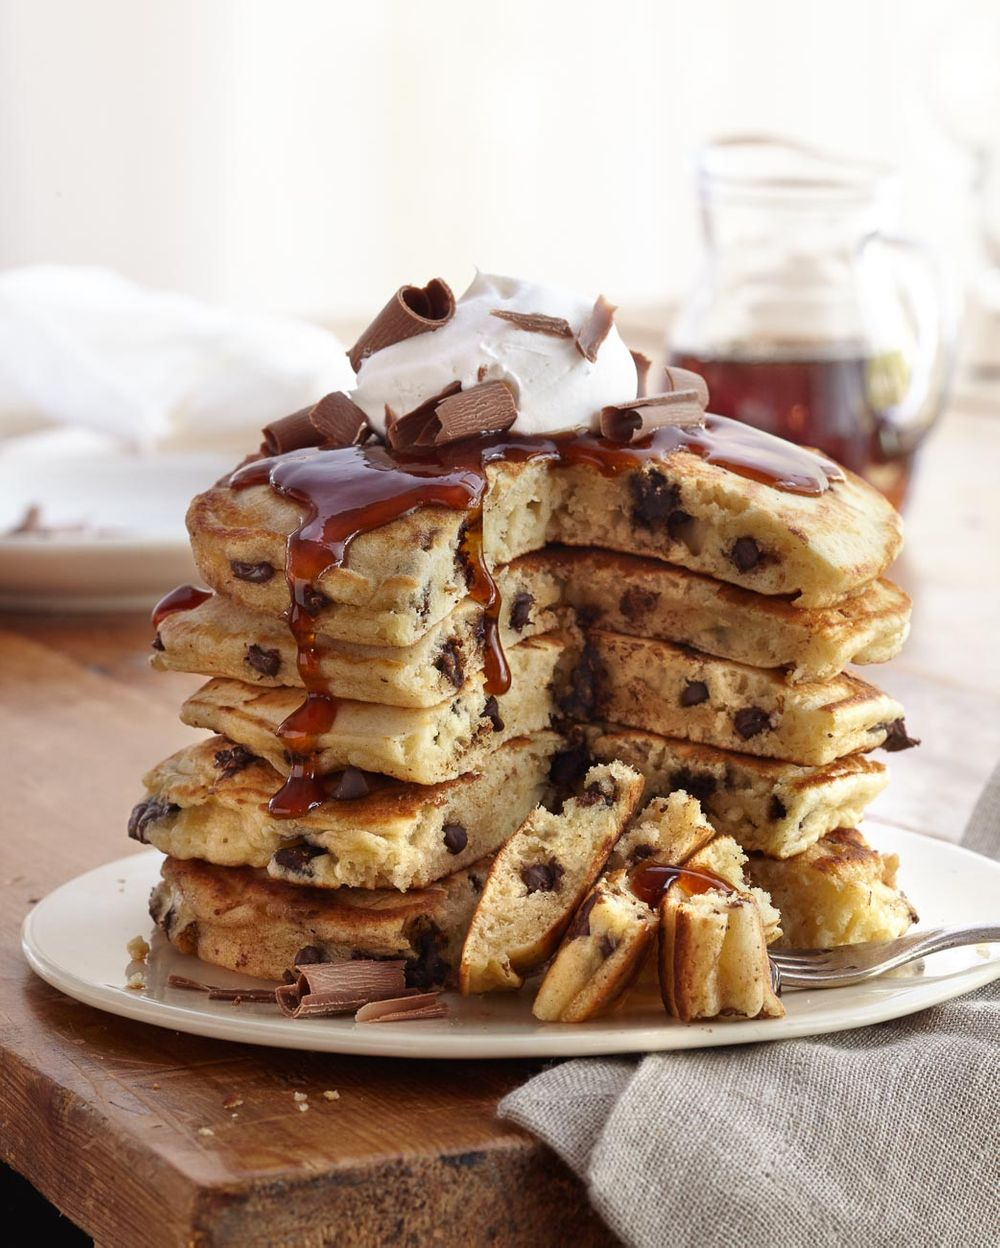 chocolate-chip-pancakes-food-stylist-san-francisco.jpg